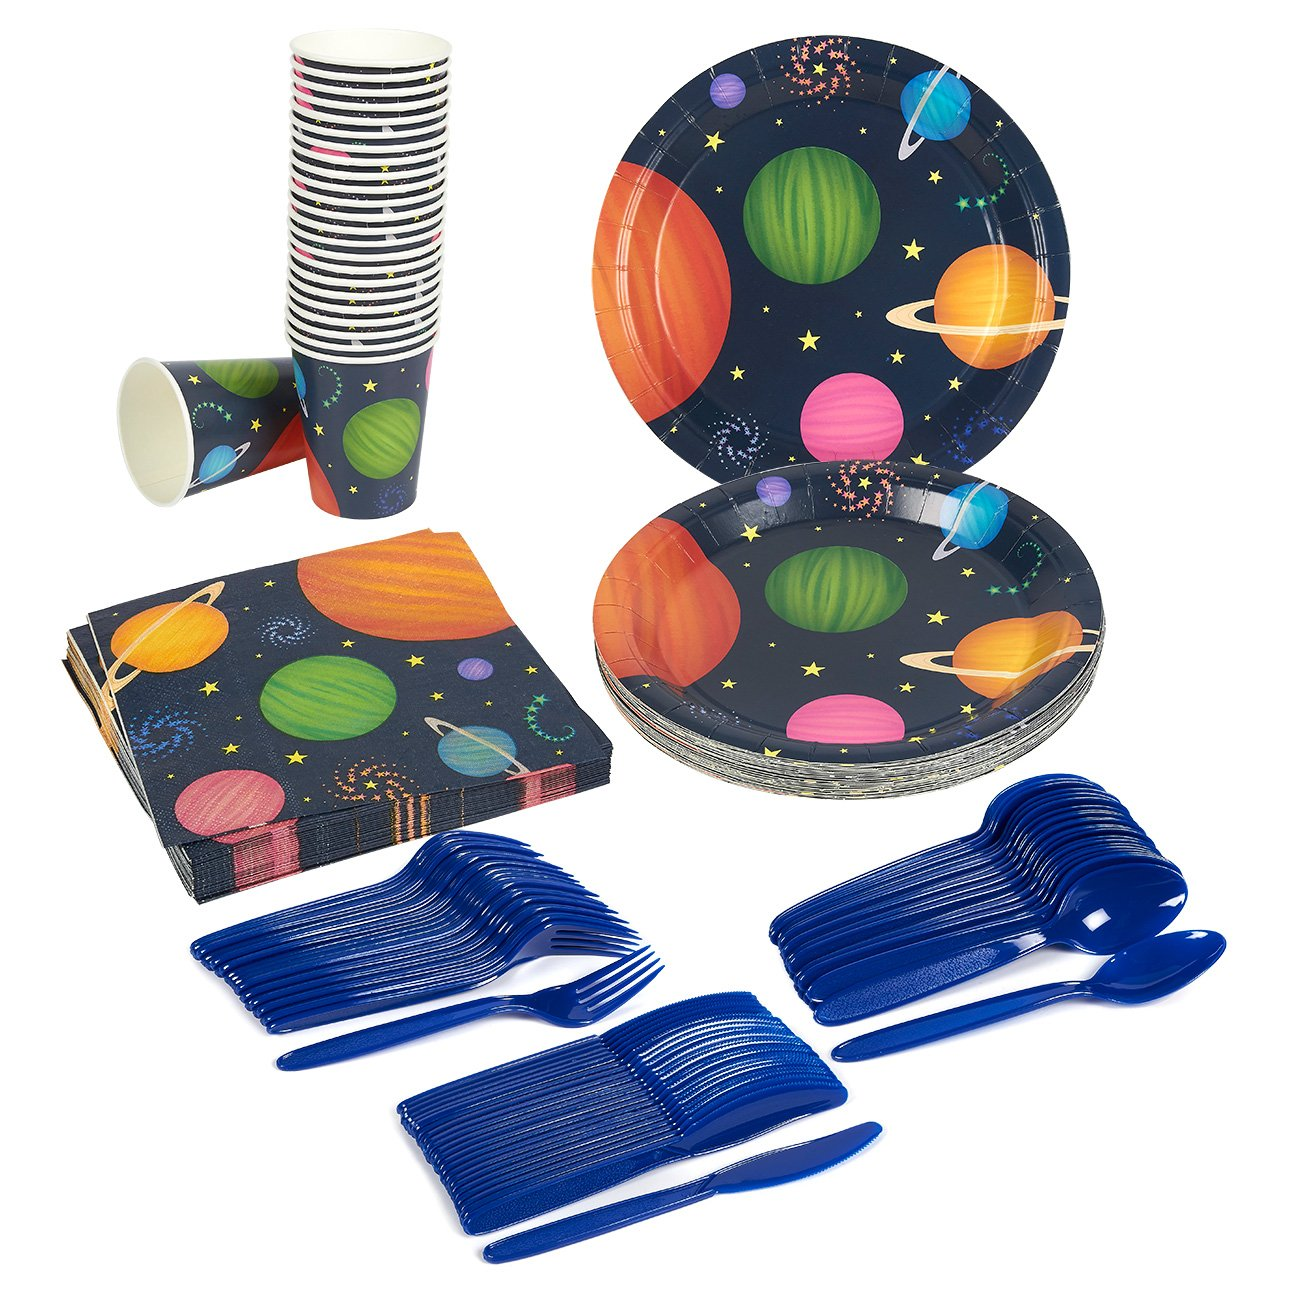 Outer Space Party Supplies – Serves 24 – Includes Plates, Knives, Spoons, Forks, Cups and Napkins. Perfect Outer Space Birthday Party Pack for Kids Planet Themed Parties. by Juvale